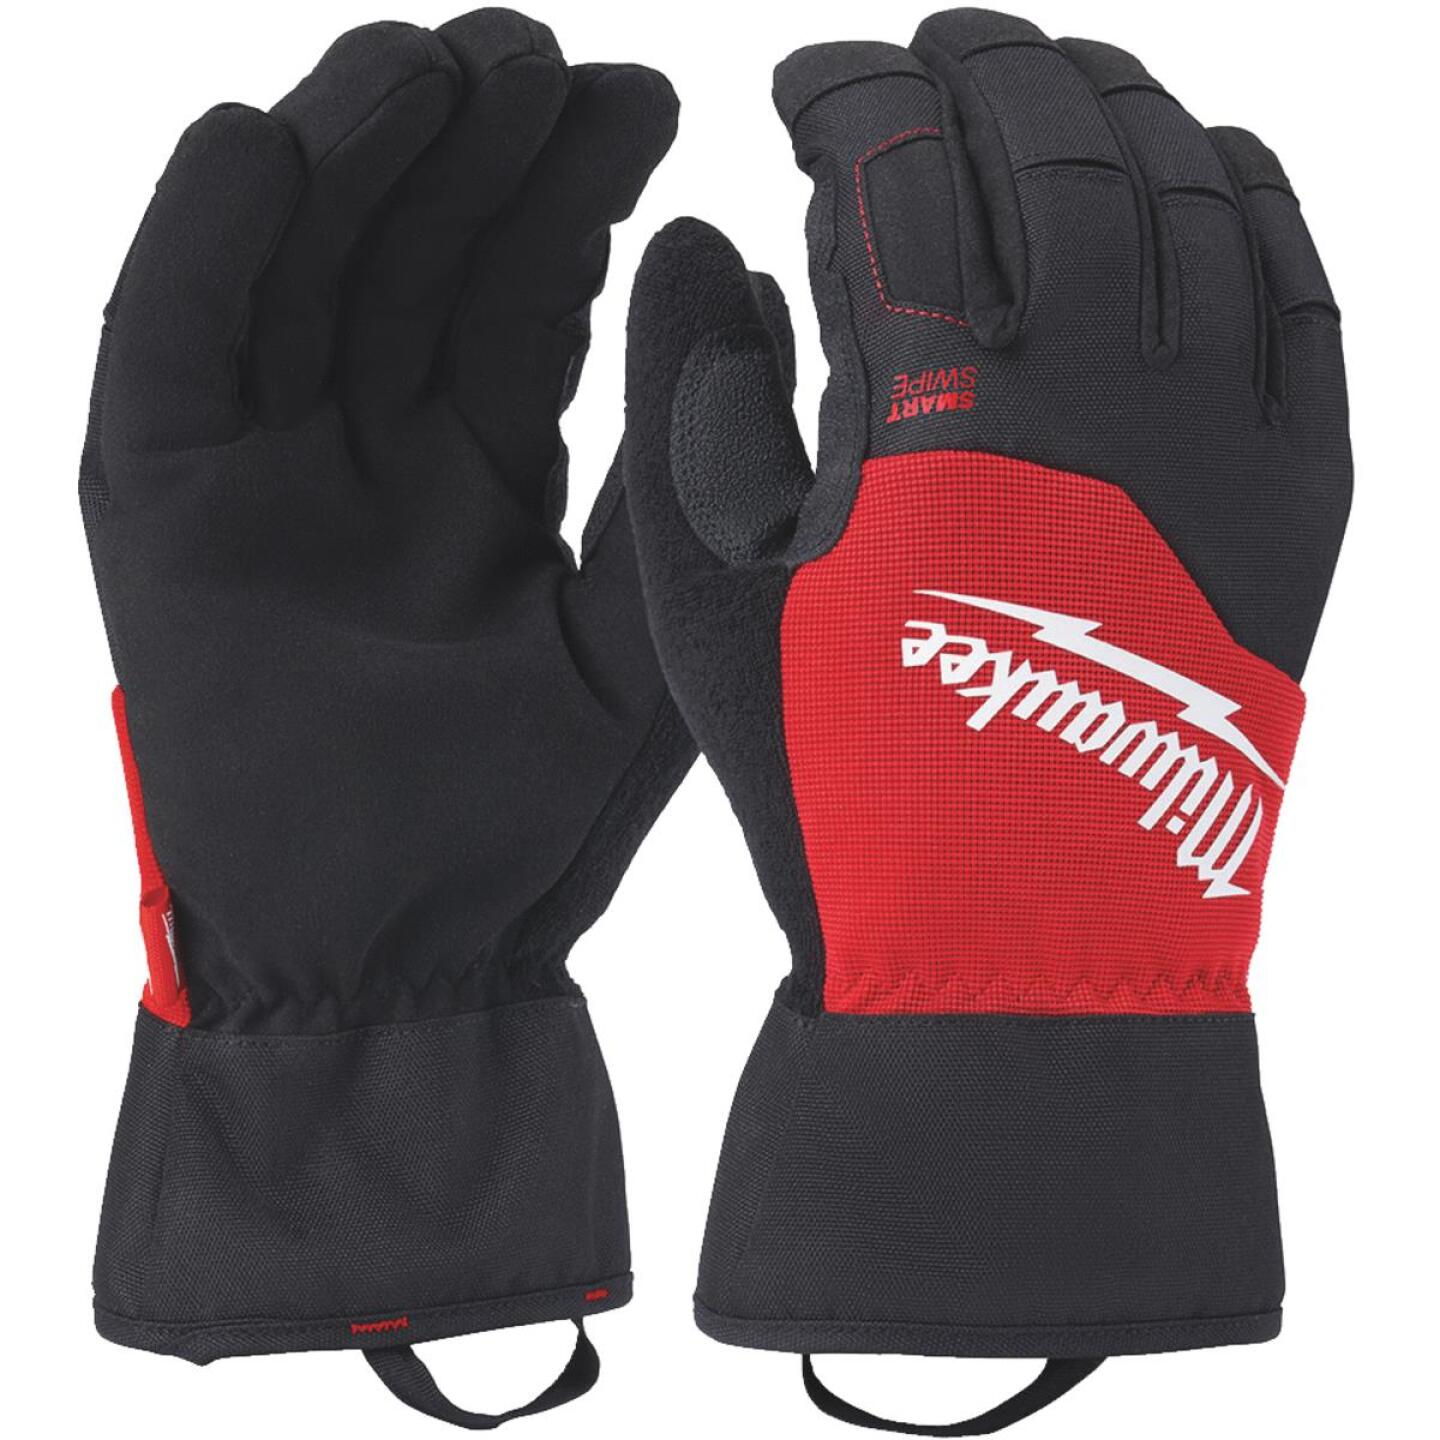 Milwaukee Men's XL Synthetic Winter Performance Glove Image 1